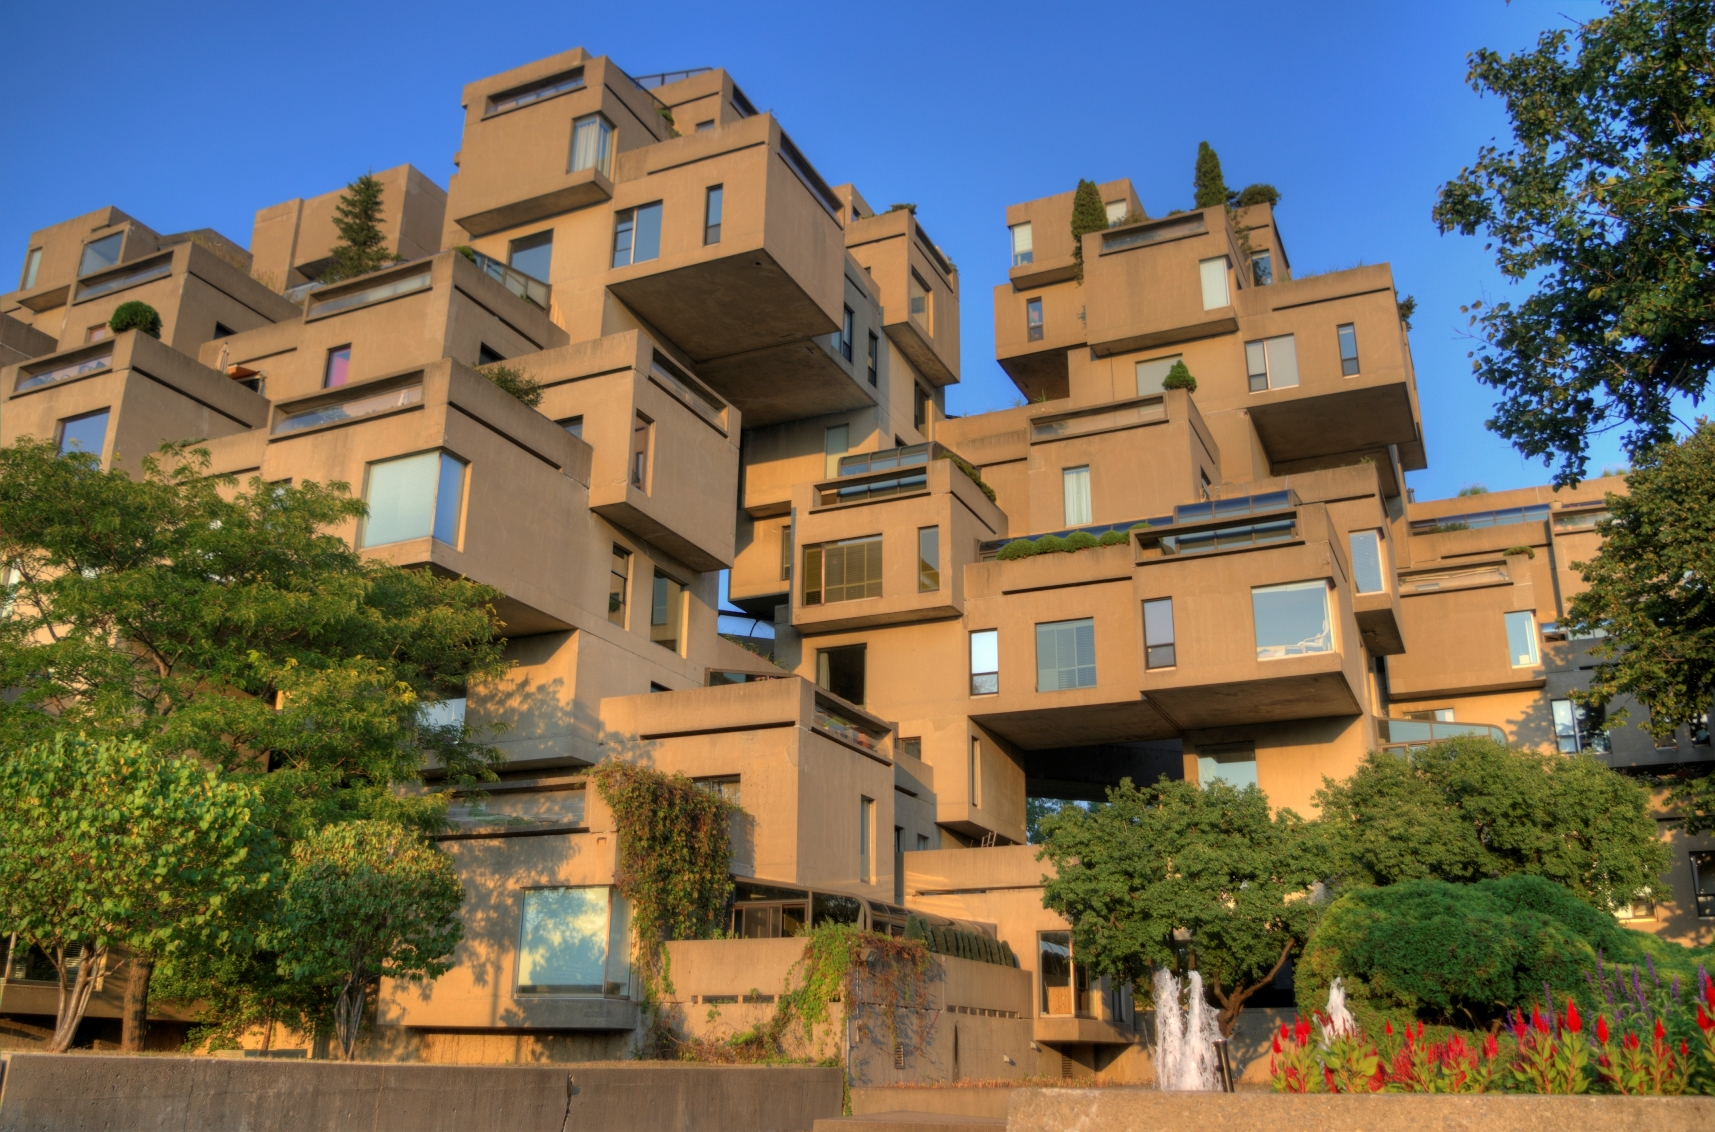 Apartment complex made out of many rectangular concrete rooms stacked on top of each other in uneven fashion.